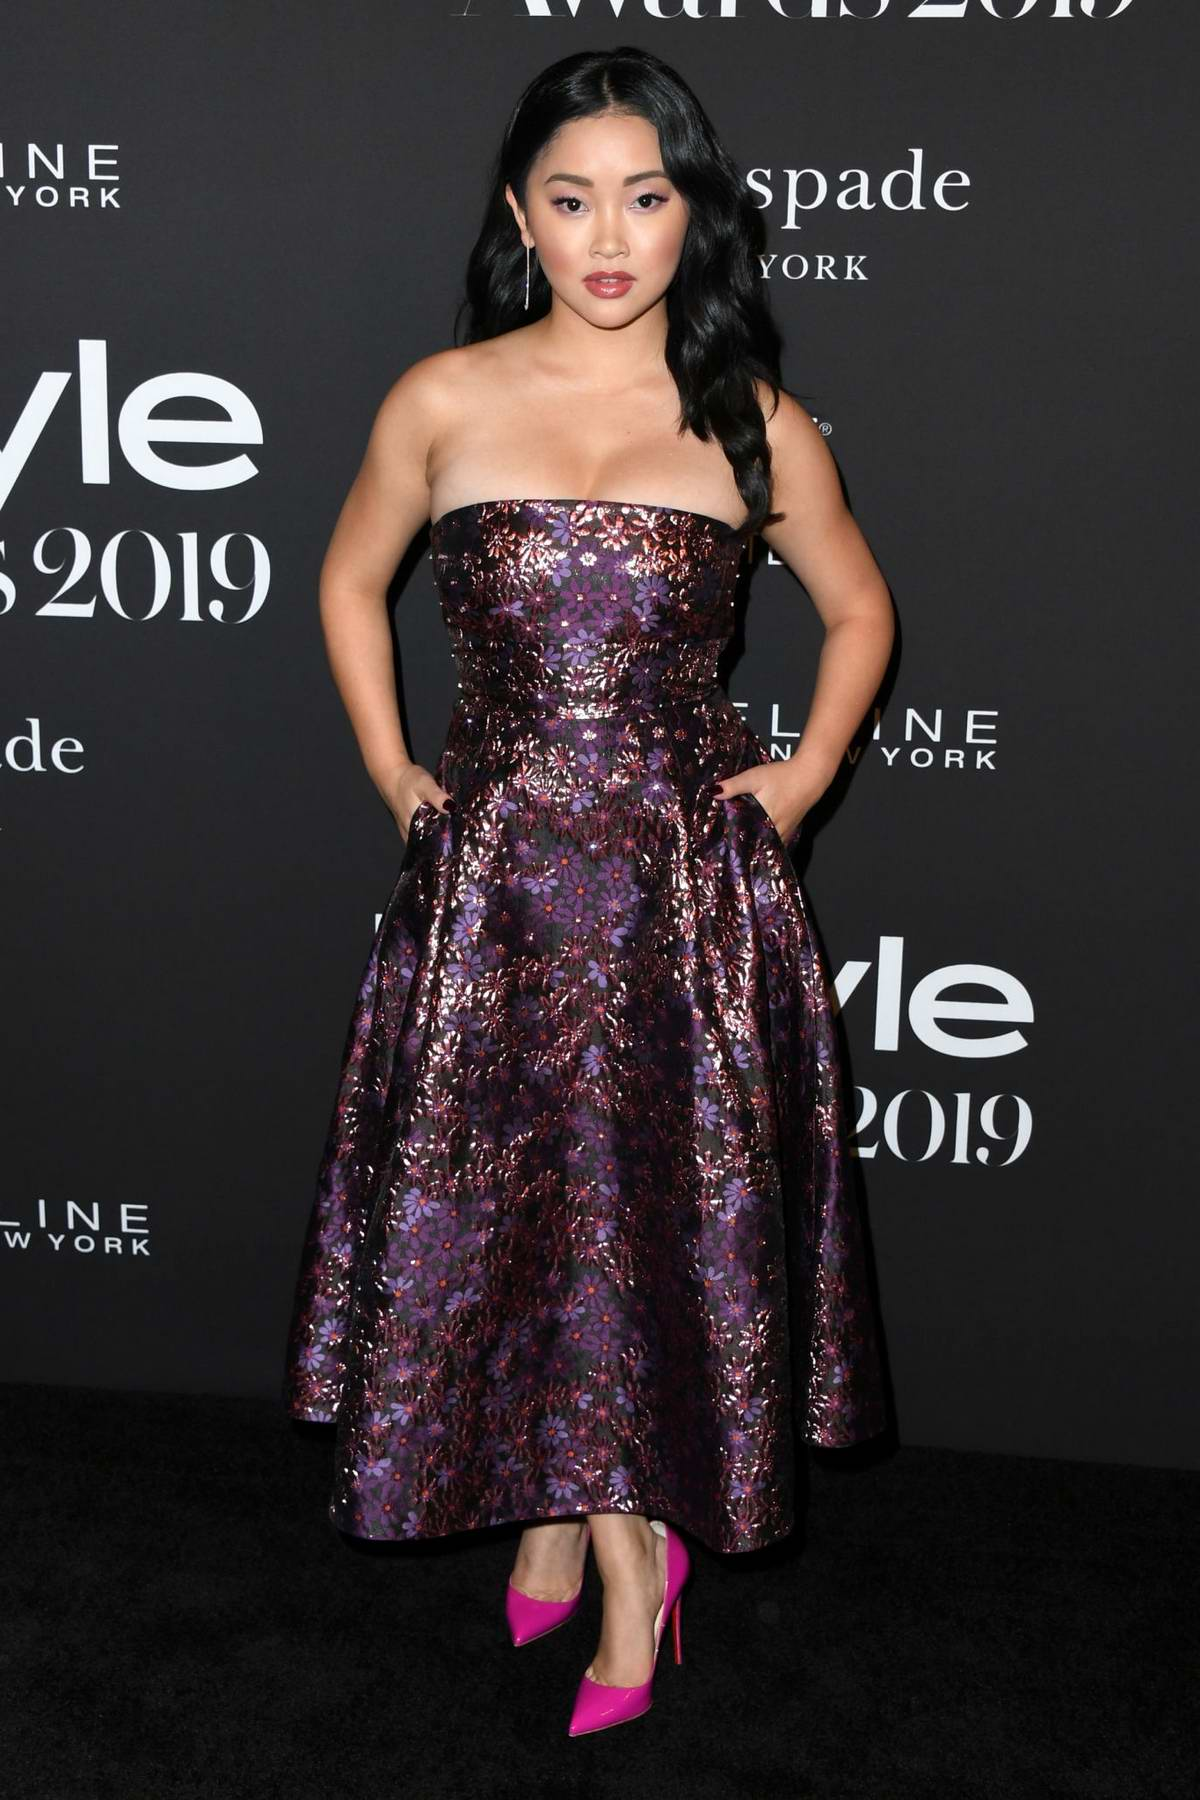 Lana Condor attends the 5th Annual InStyle Awards in Los Angeles